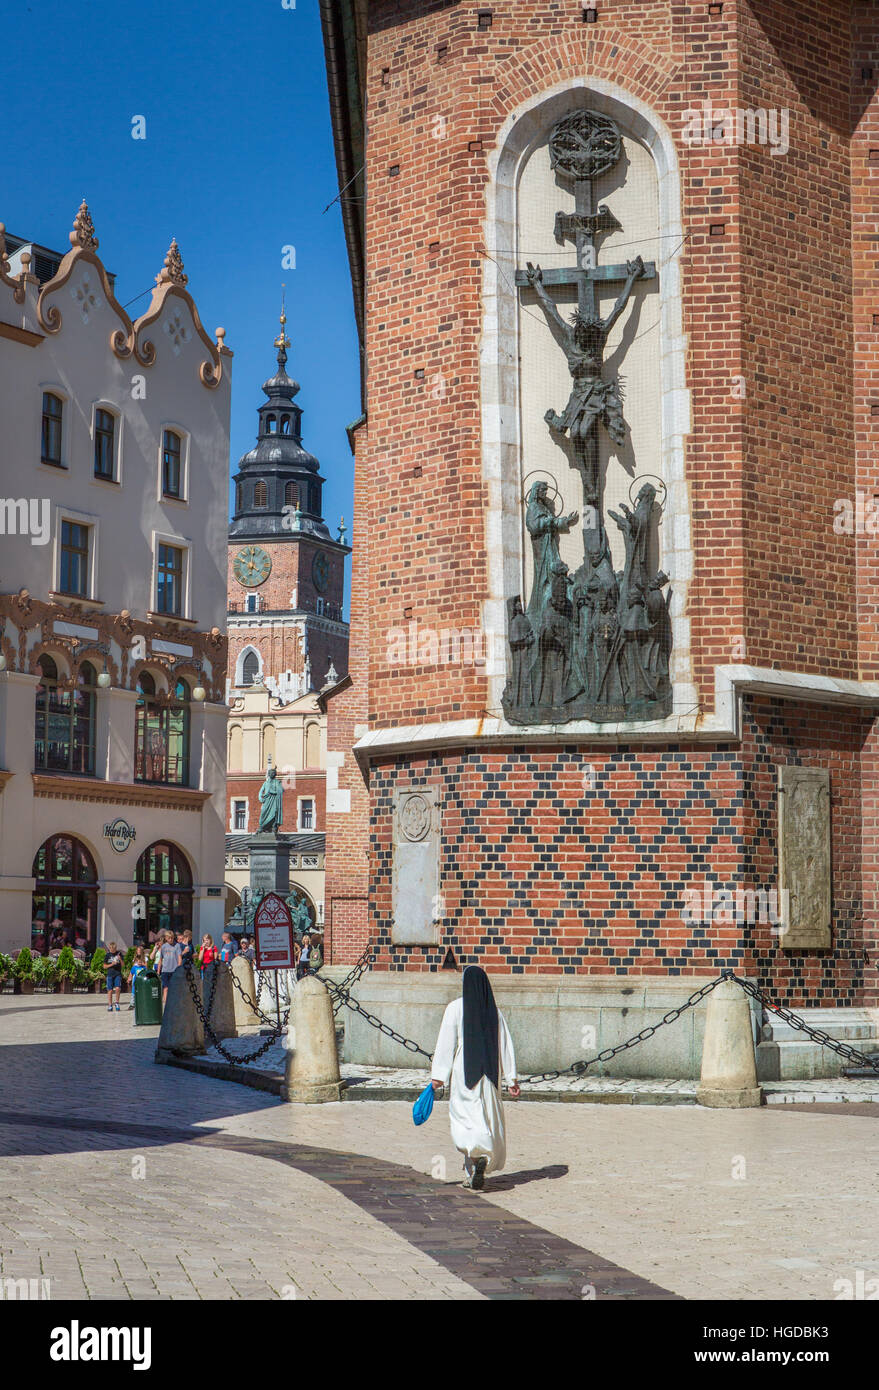 Town Hall Tower on Market Square in Krakow - Stock Image